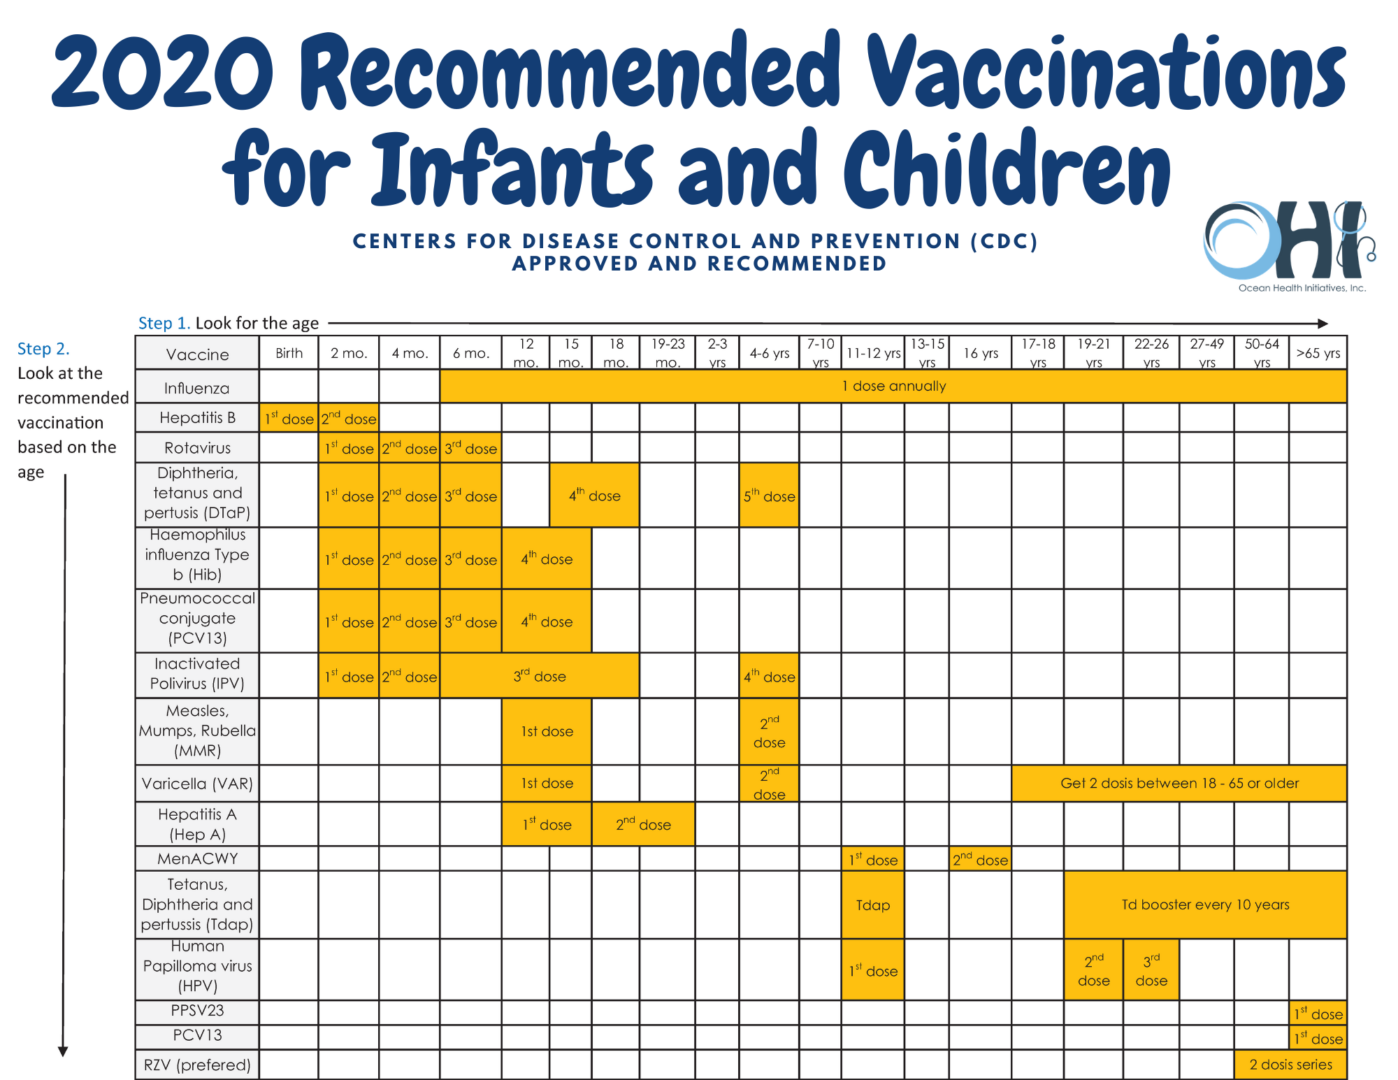 2020 Recommended Vaccinations for Infants and Children